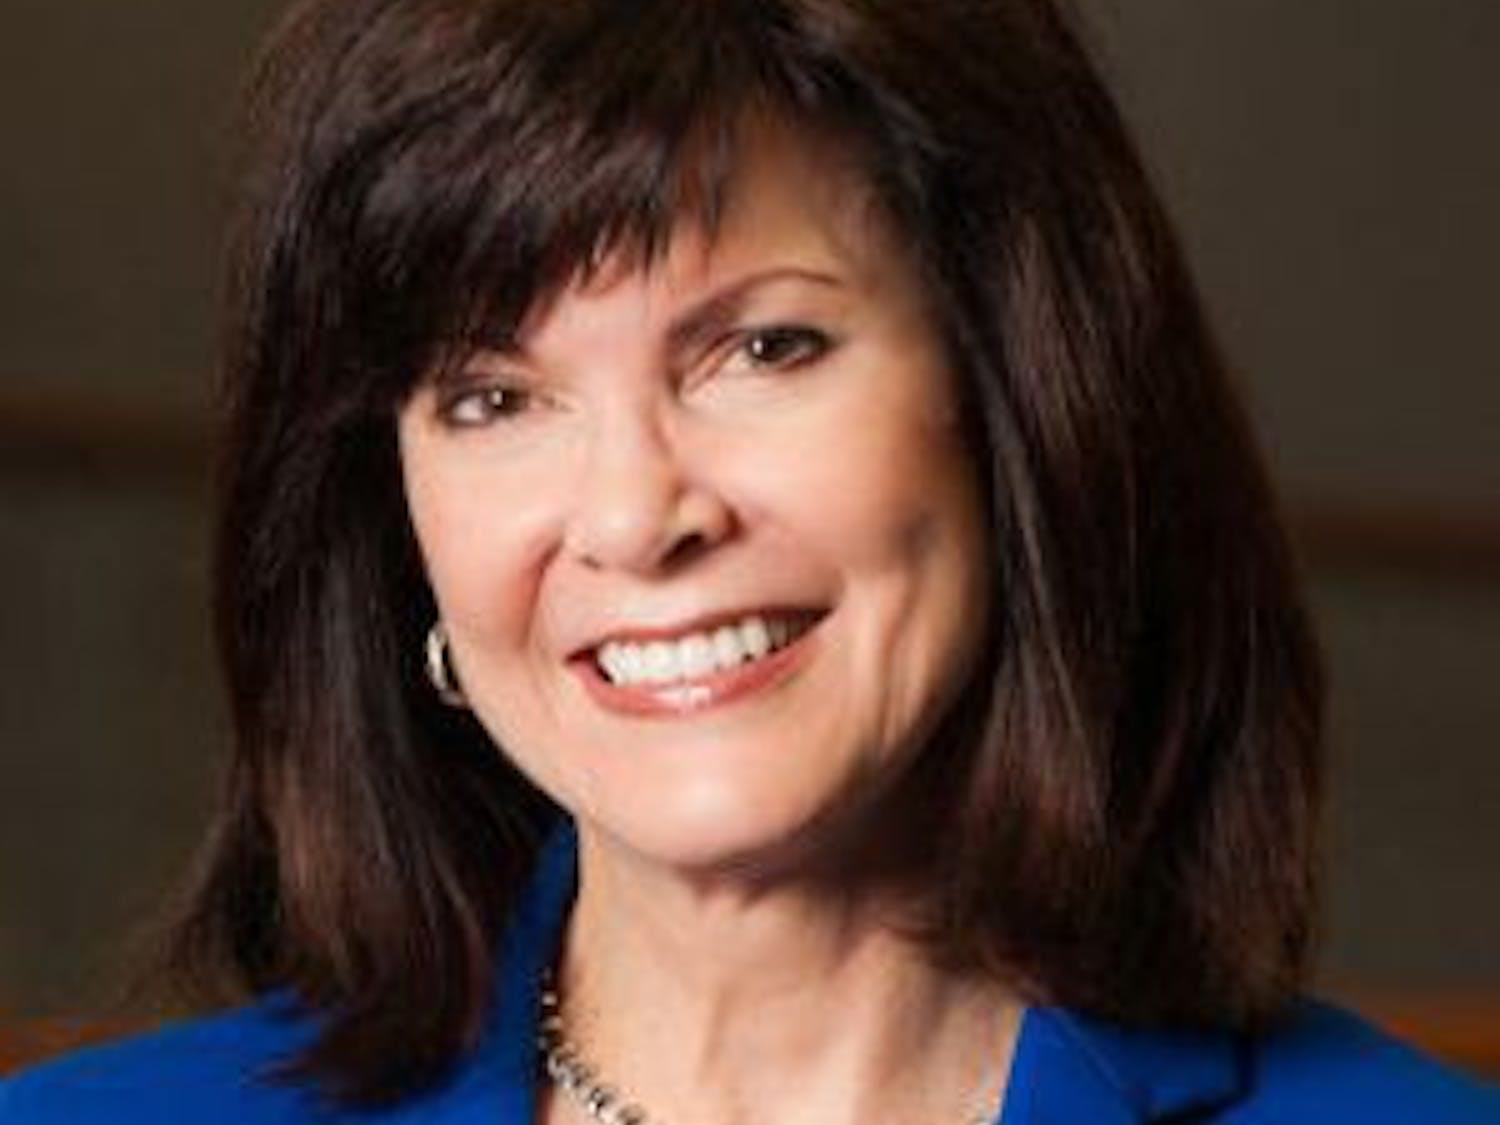 Diane McFarlin, the dean of UF's College of Journalism and Communications, was named a member of Florida Trend Magazine's Florida 500 list. She attributes her success to the team she works with.